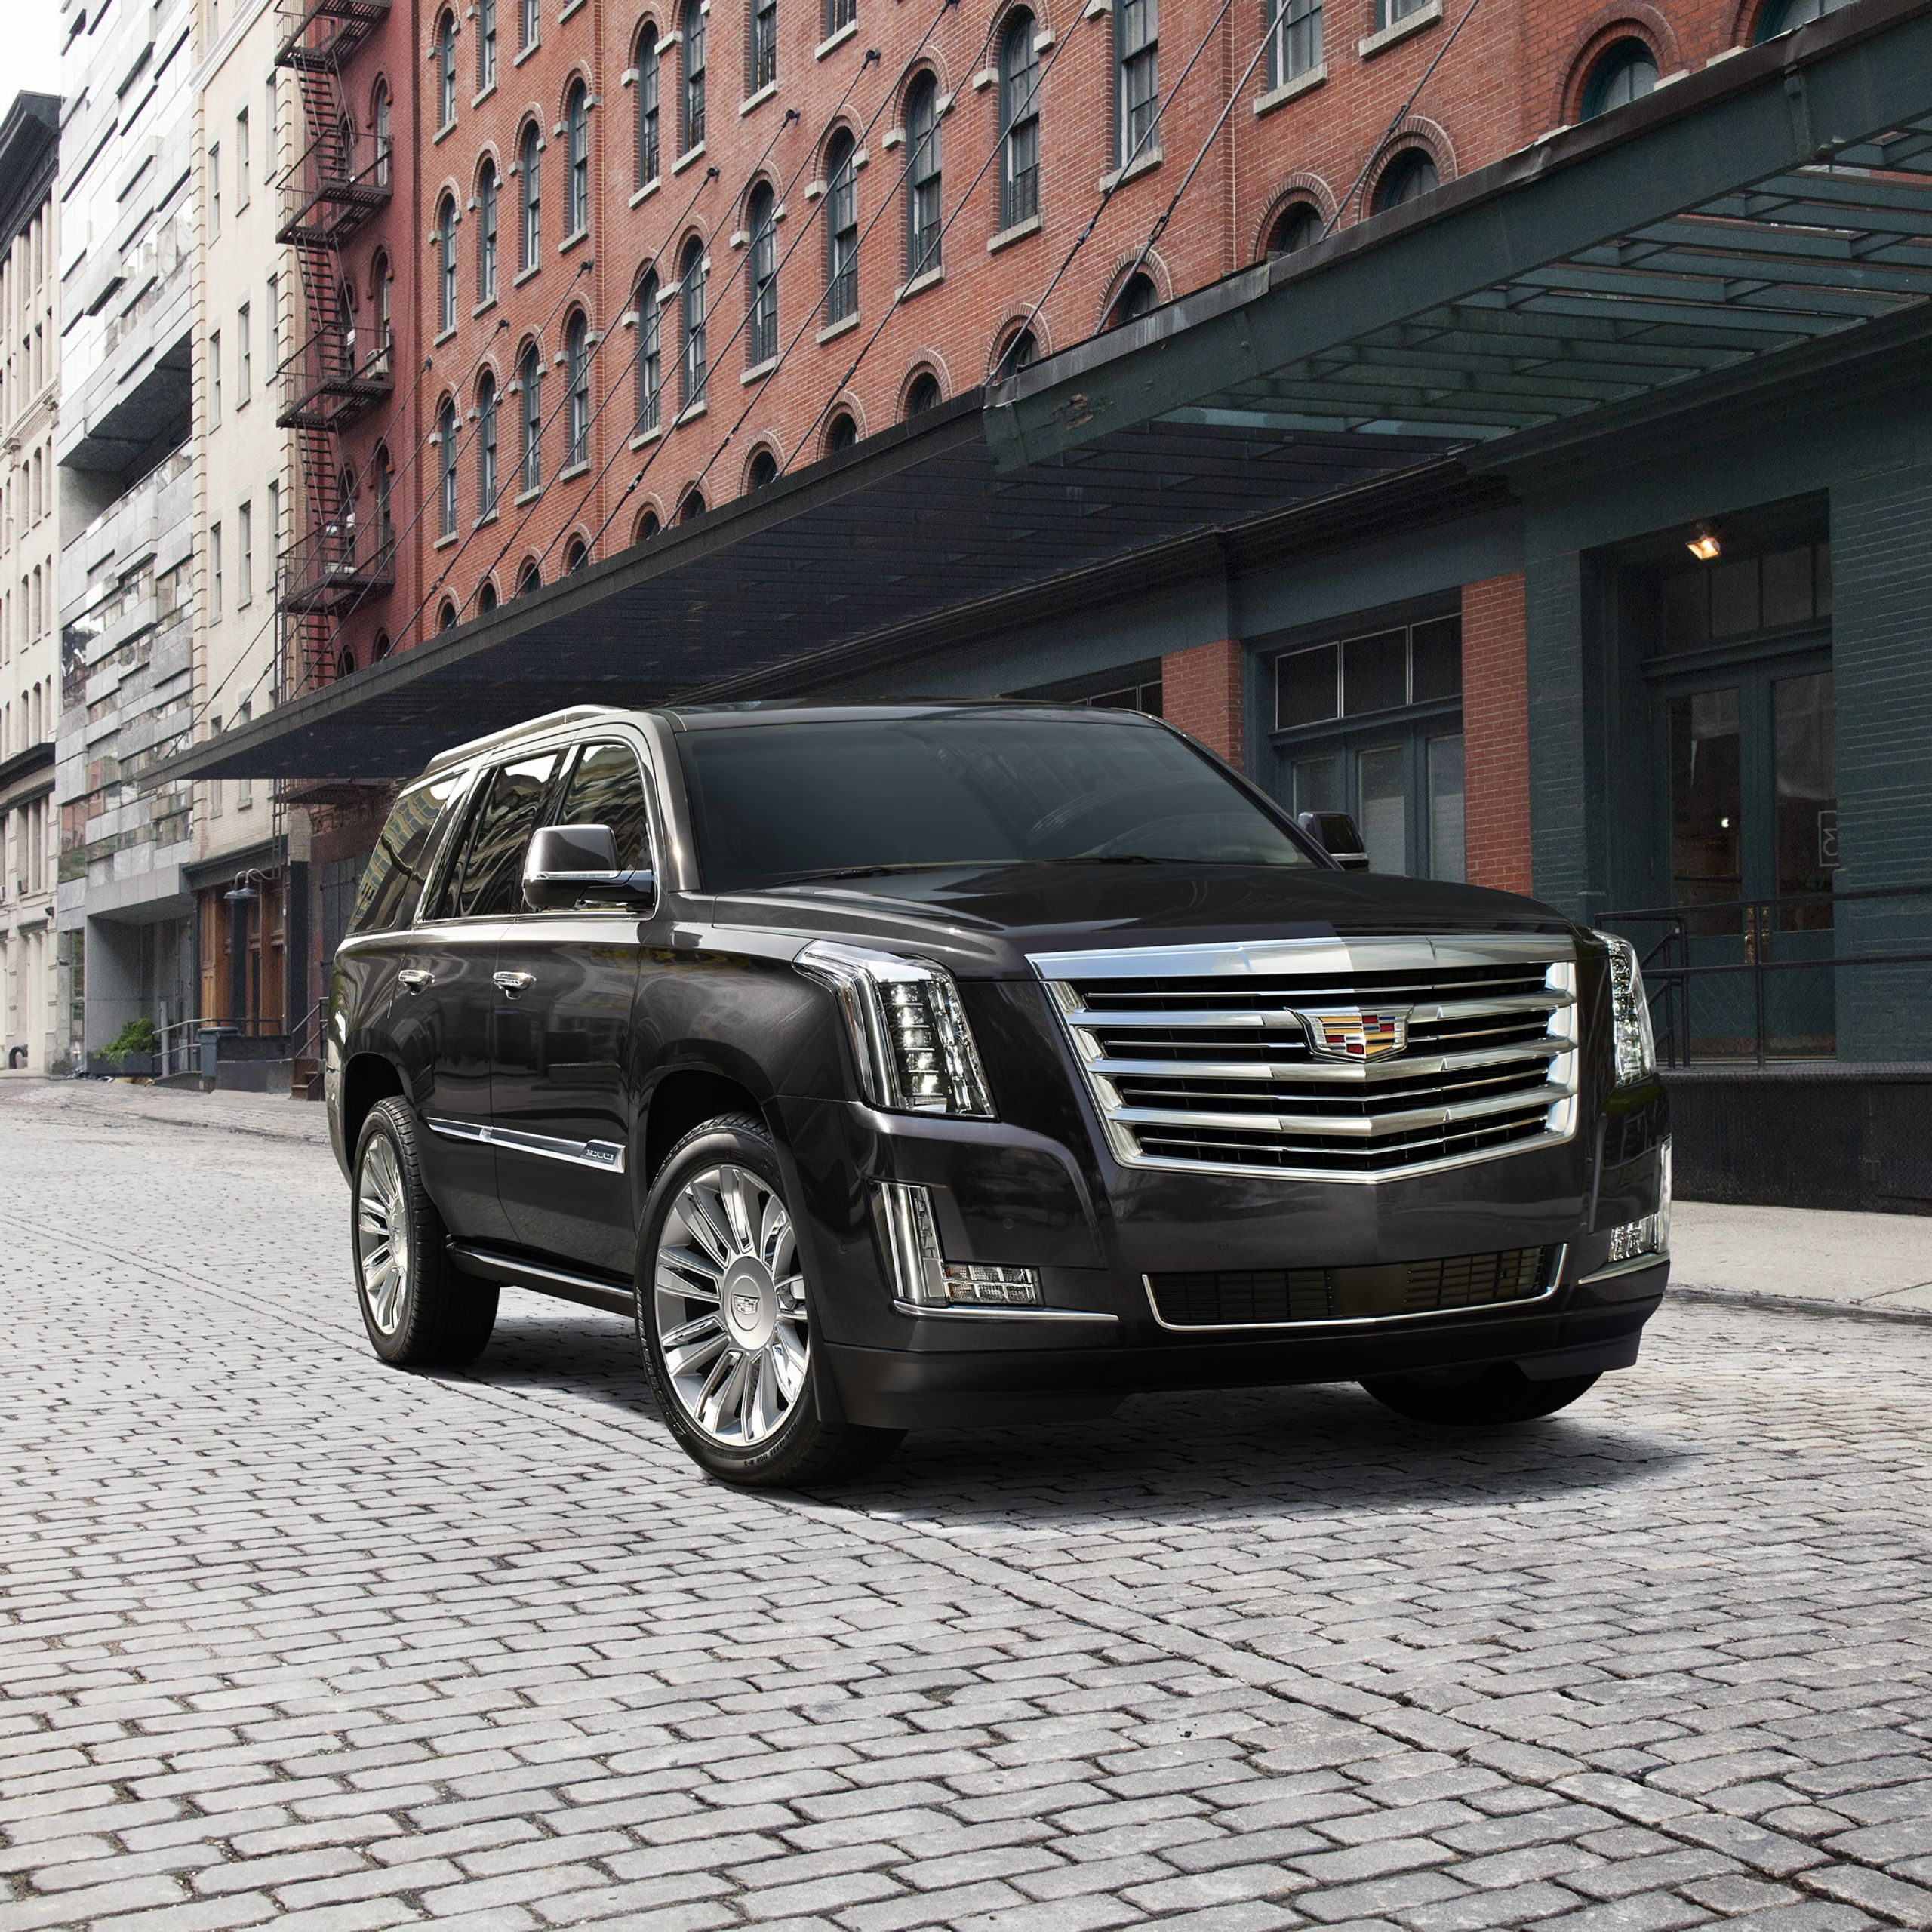 Used Cadillac Escalade Lovely Ten Facts that Distinguish the Escalade S Innovative 10